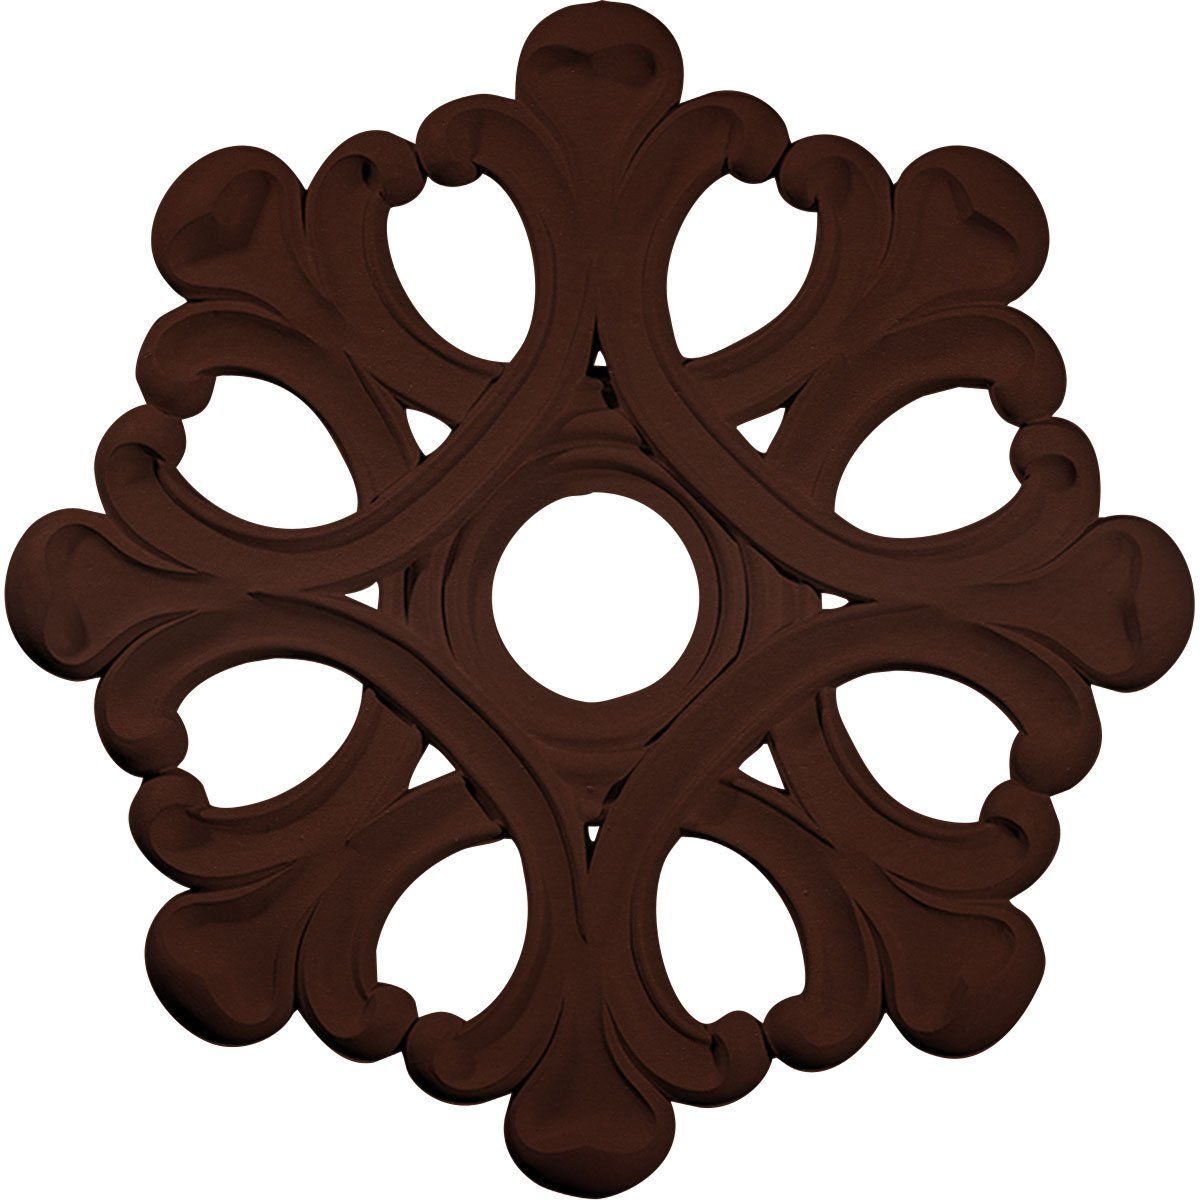 Ekena Millwork CM20ANBMF Angel Ceiling Medallion fits Canopies up to 4 3/8'', Brushed Mahogany